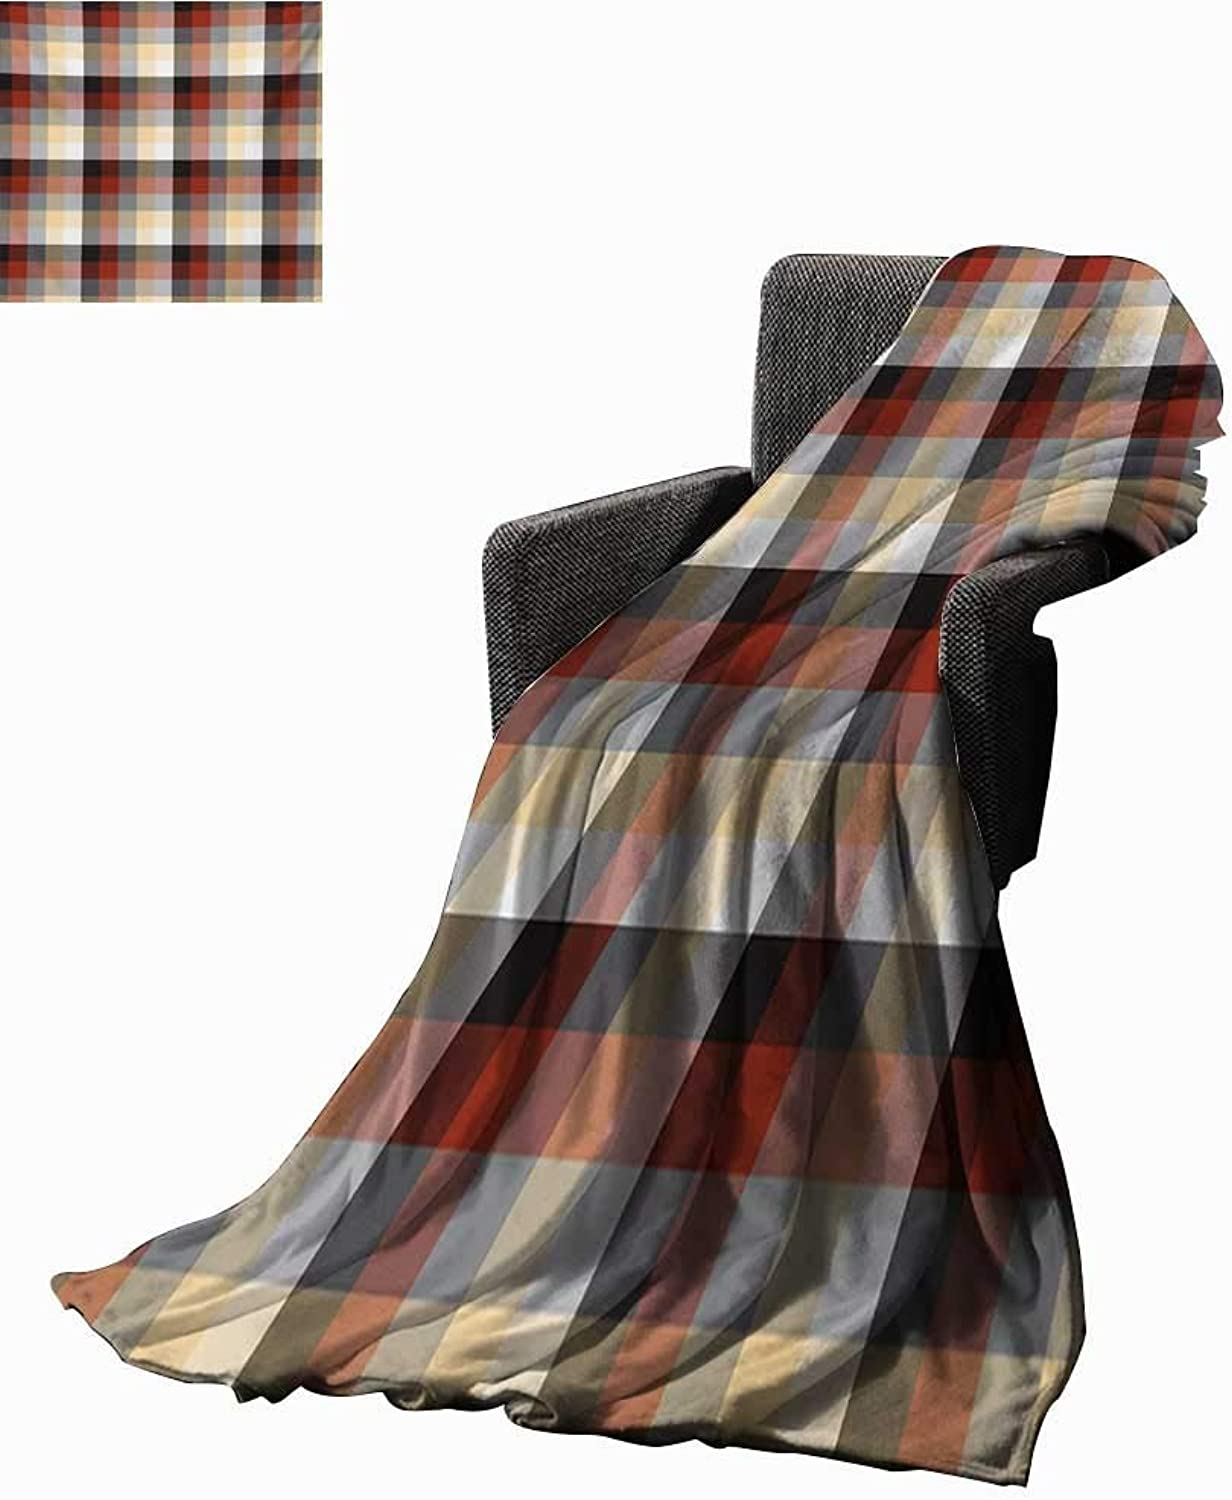 Plaid Digital Printing Blanket Checkered Squares Pattern with colorful Quilt Design Abstract Geometric Arrangement,Super Soft and Comfortable,Suitable for Sofas,Chairs,beds